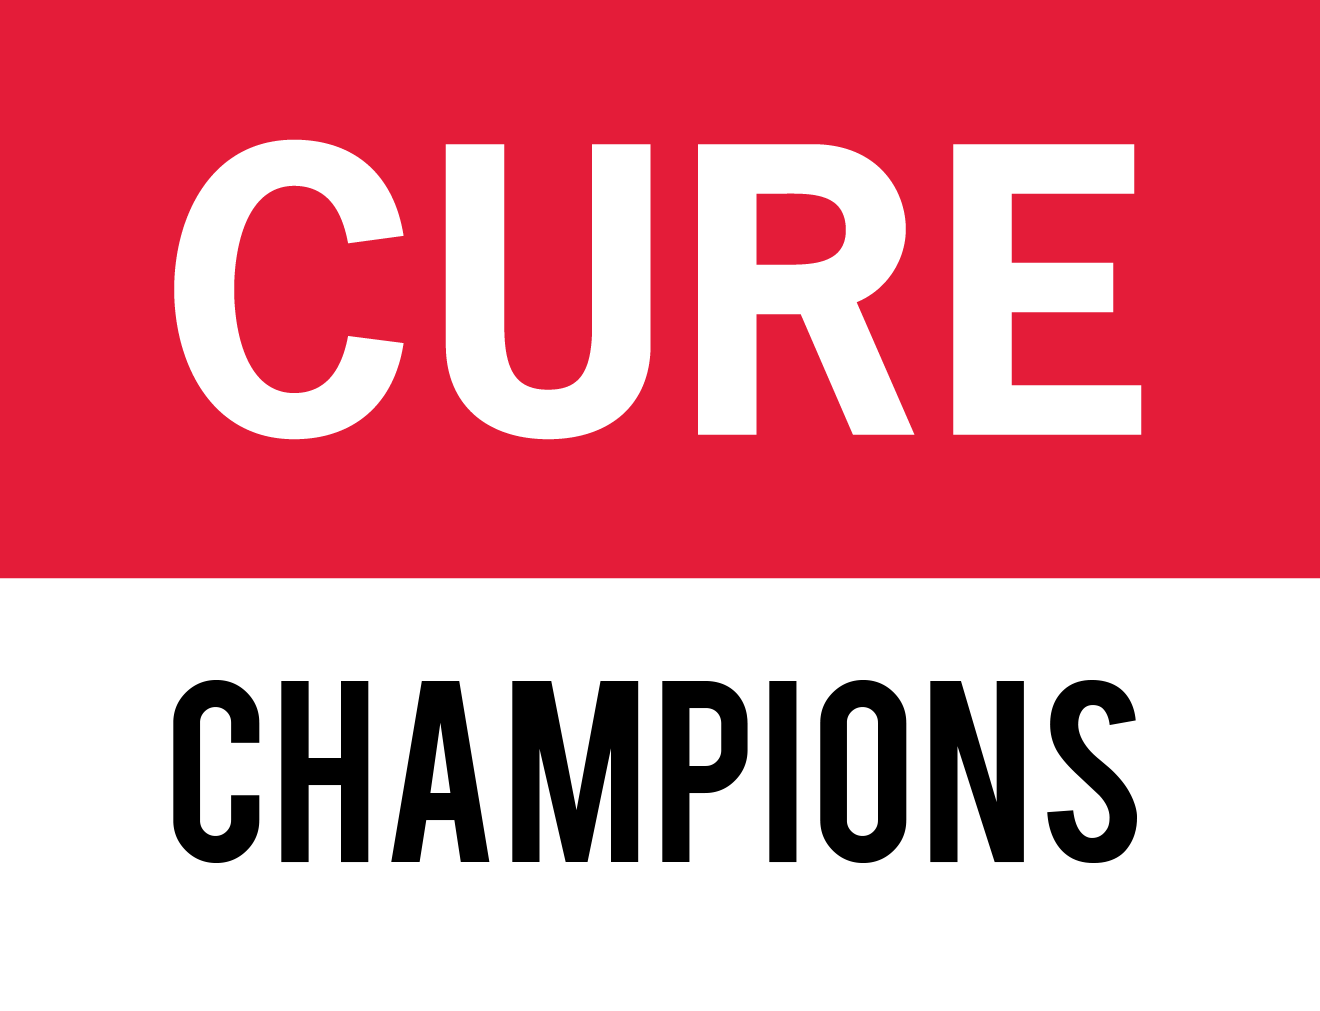 CURE Champions Logo